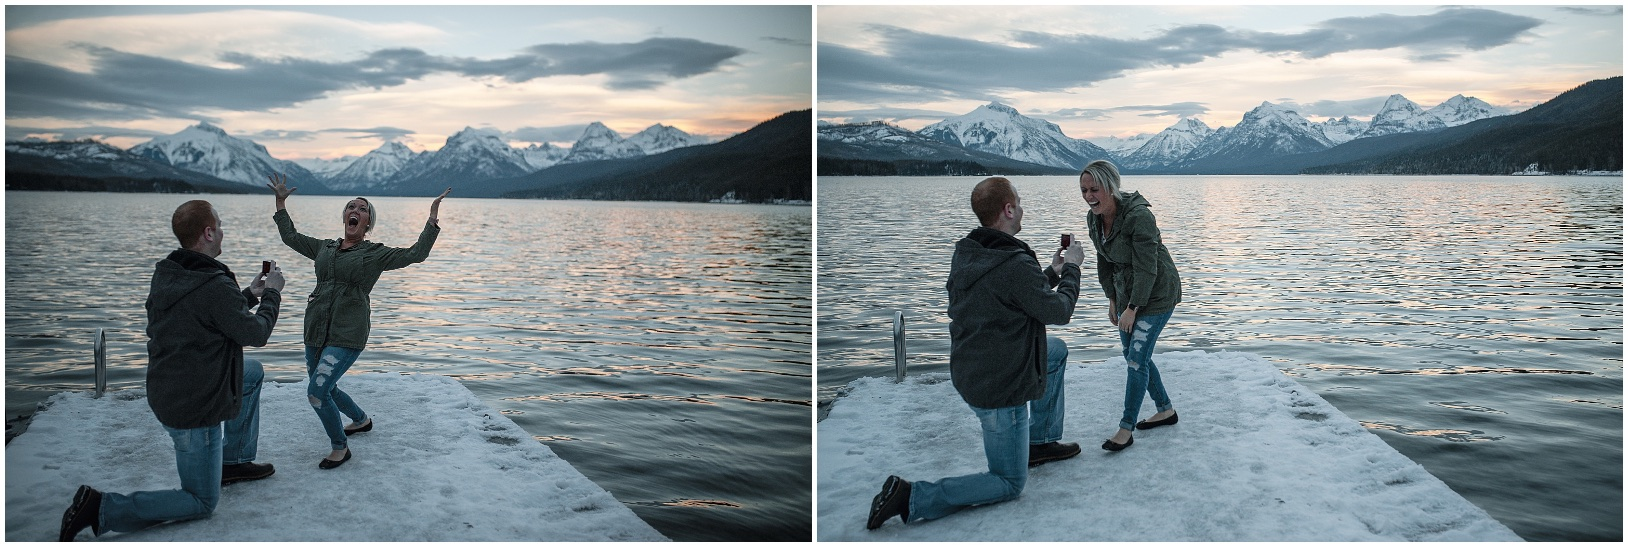 lindseyjanephotography_proposal011.jpg